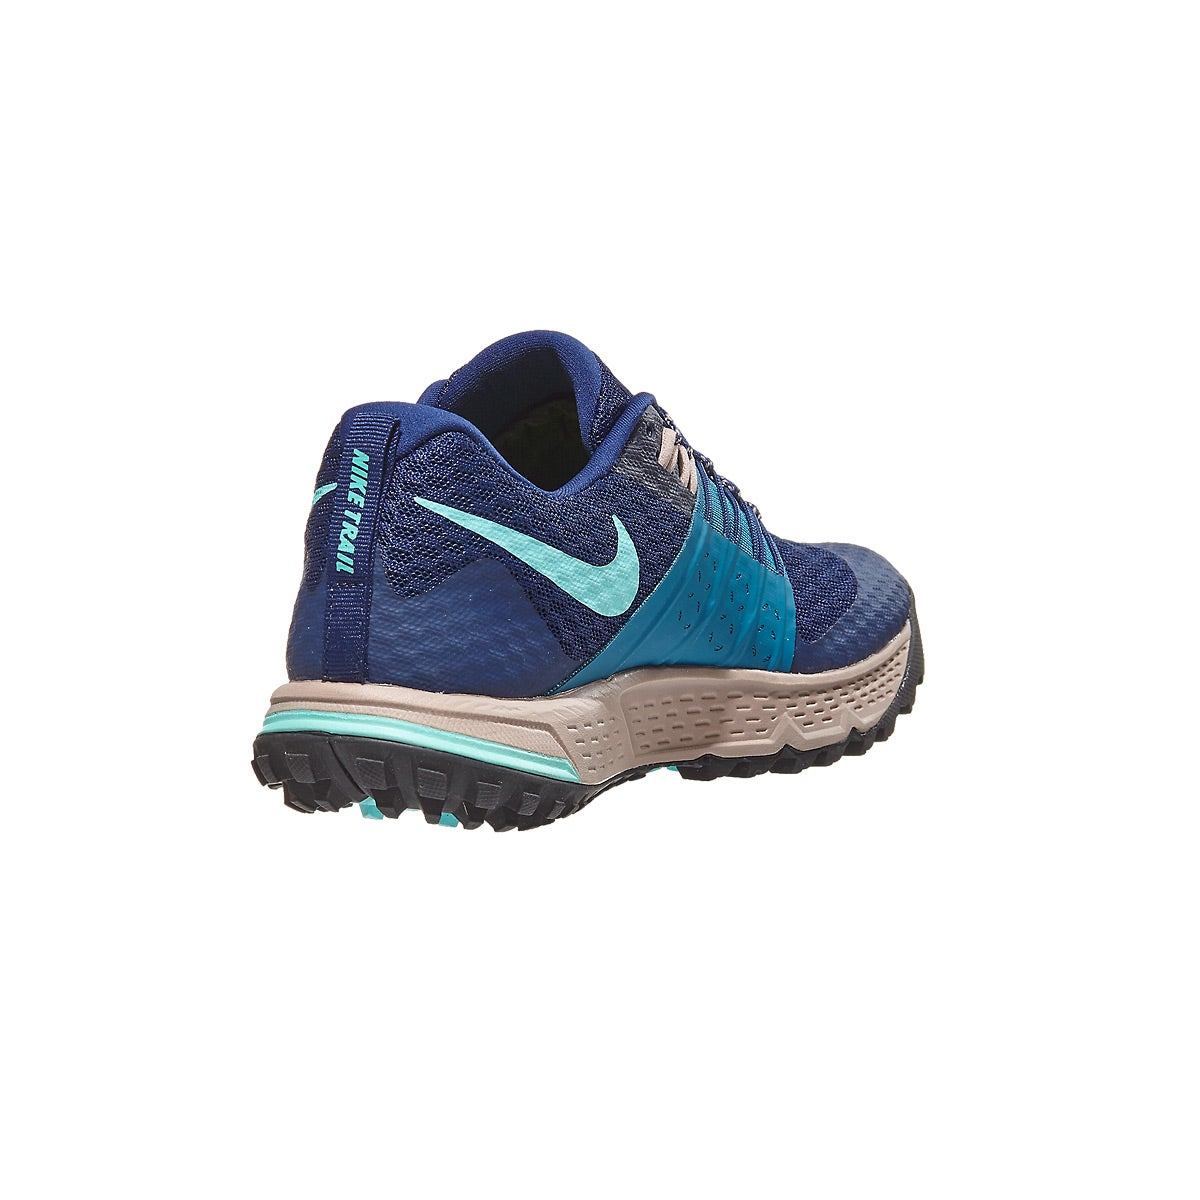 01f008ce63f Nike Zoom Wildhorse 4 Women s Shoes Blue Void Green 360° View ...